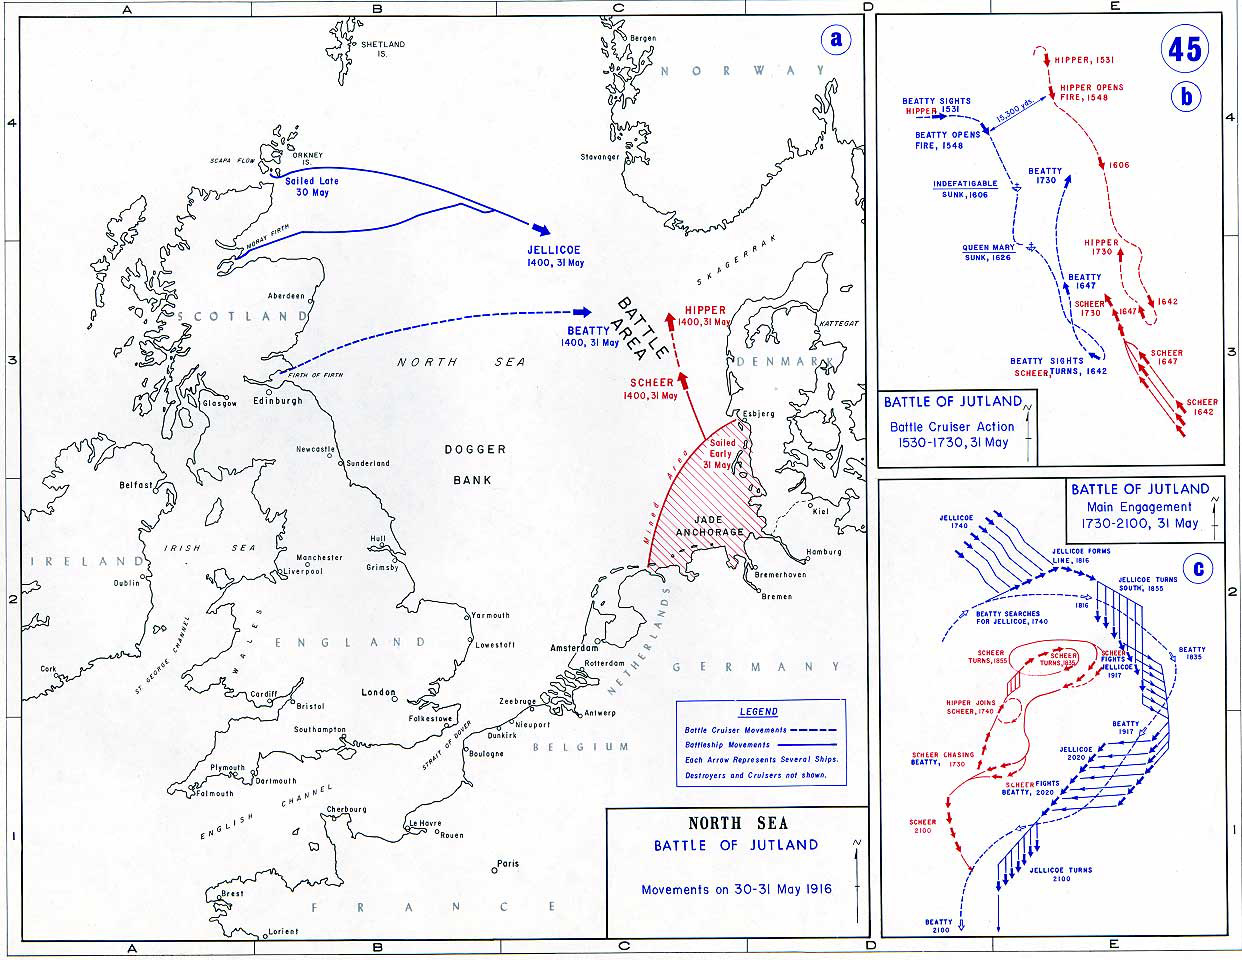 Map of the Battle of Jutland 1916